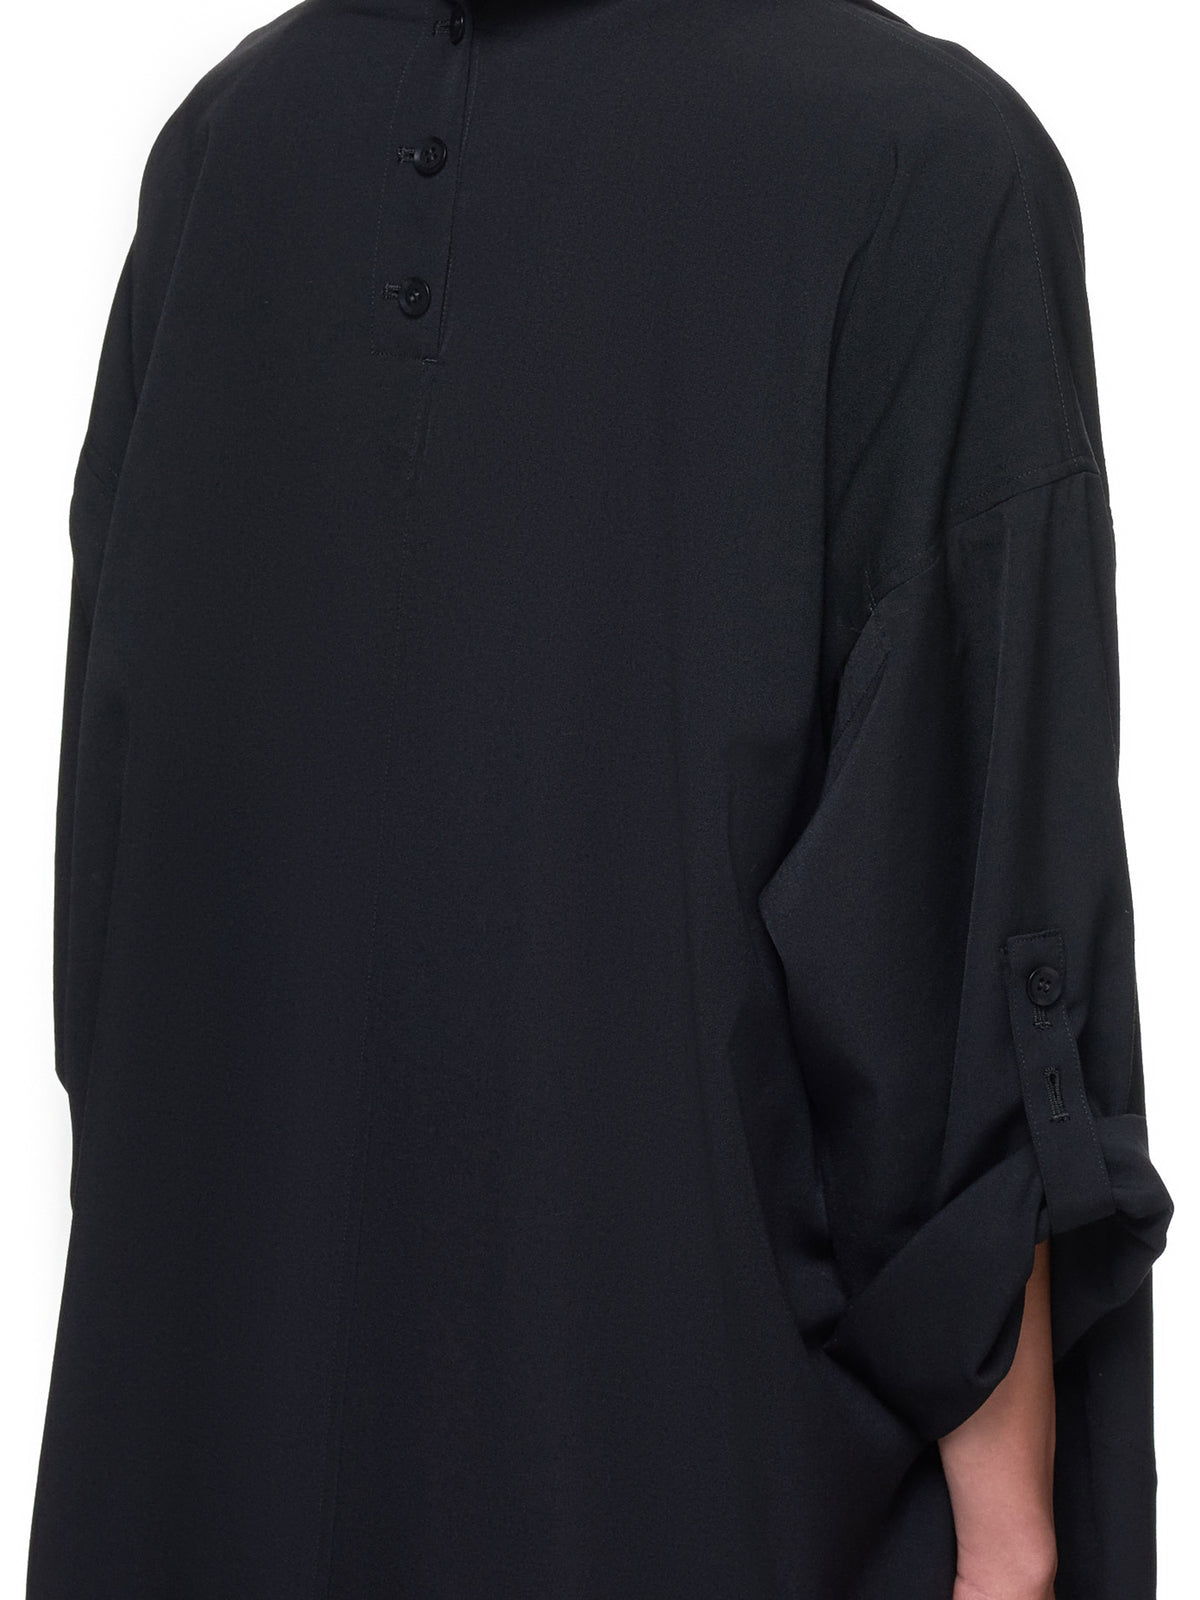 Placket Jacket (NH-C03-100-BLACK)